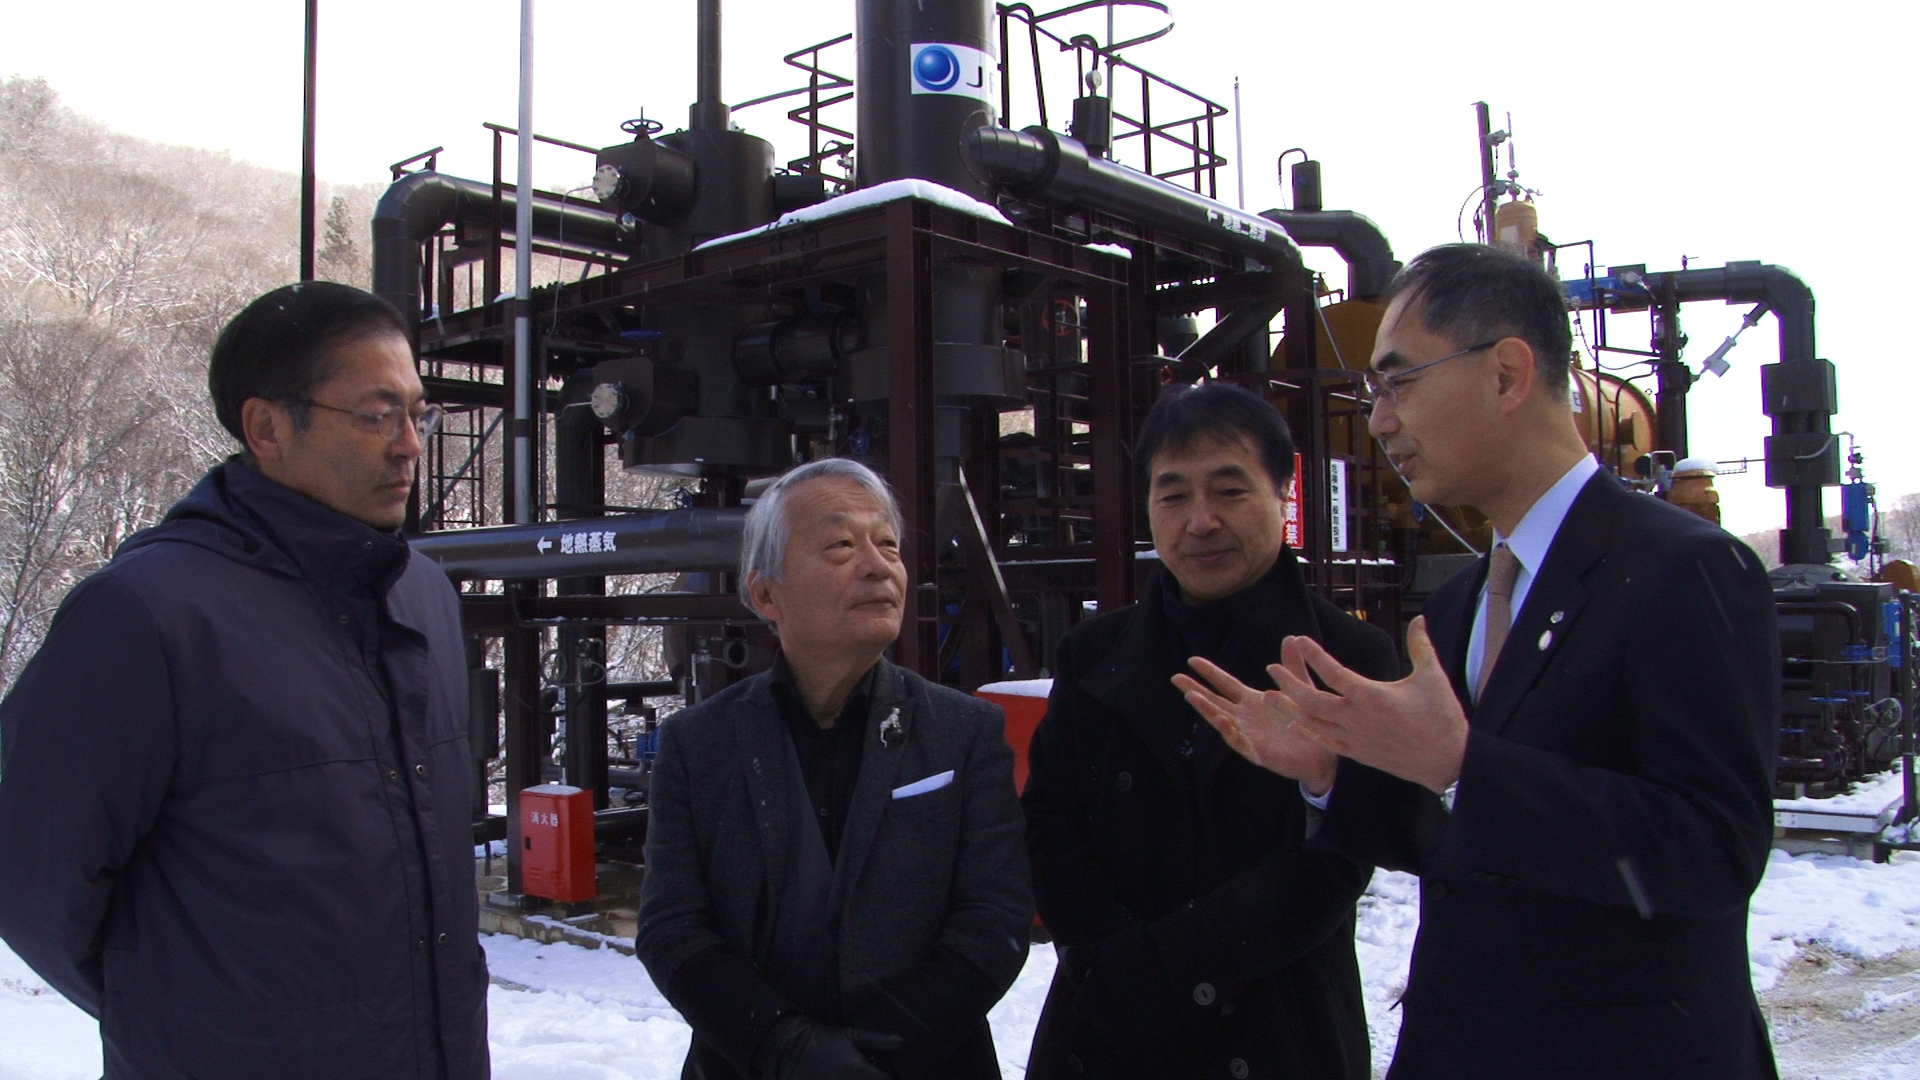 Politics of power: Hiroyuki Kawai (left) and Tetsunari Iida (center) discuss the economics of renewables with a banker in front of a geothermal apparatus in the town of Tsuchiyu Onsen in Fukushima Prefecture.   © K PROJECT